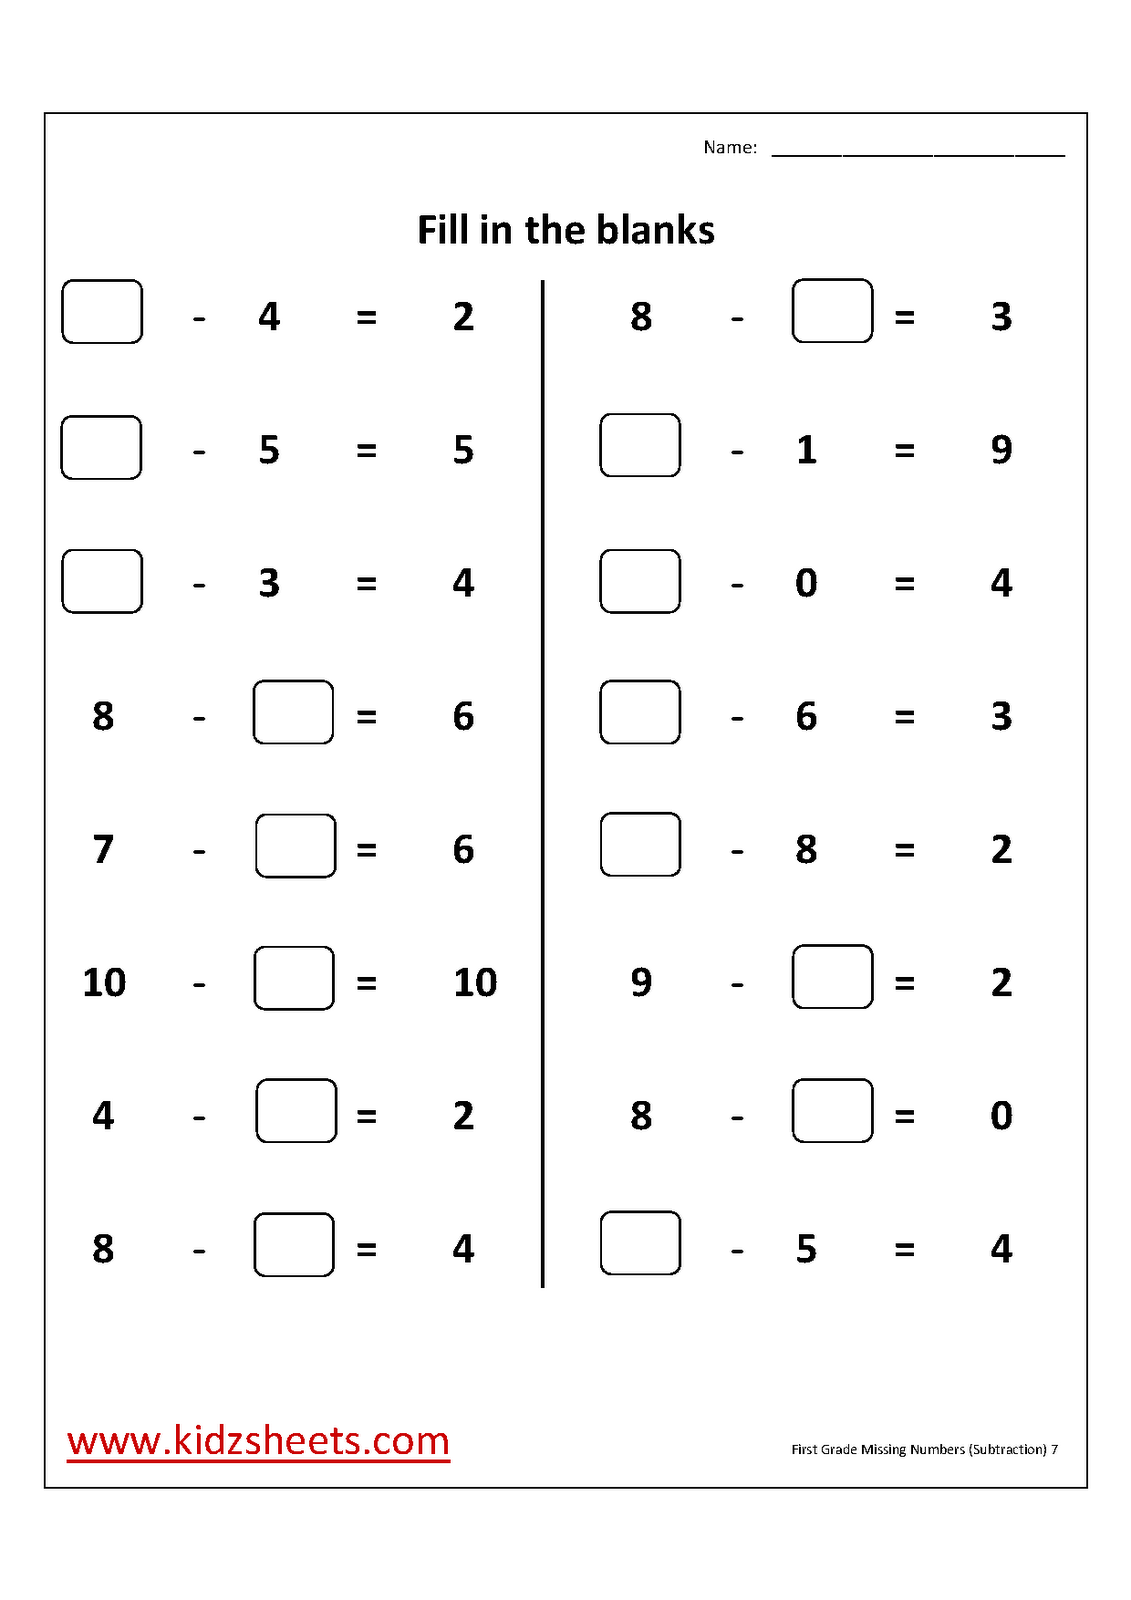 Missing Numbers For First Grade